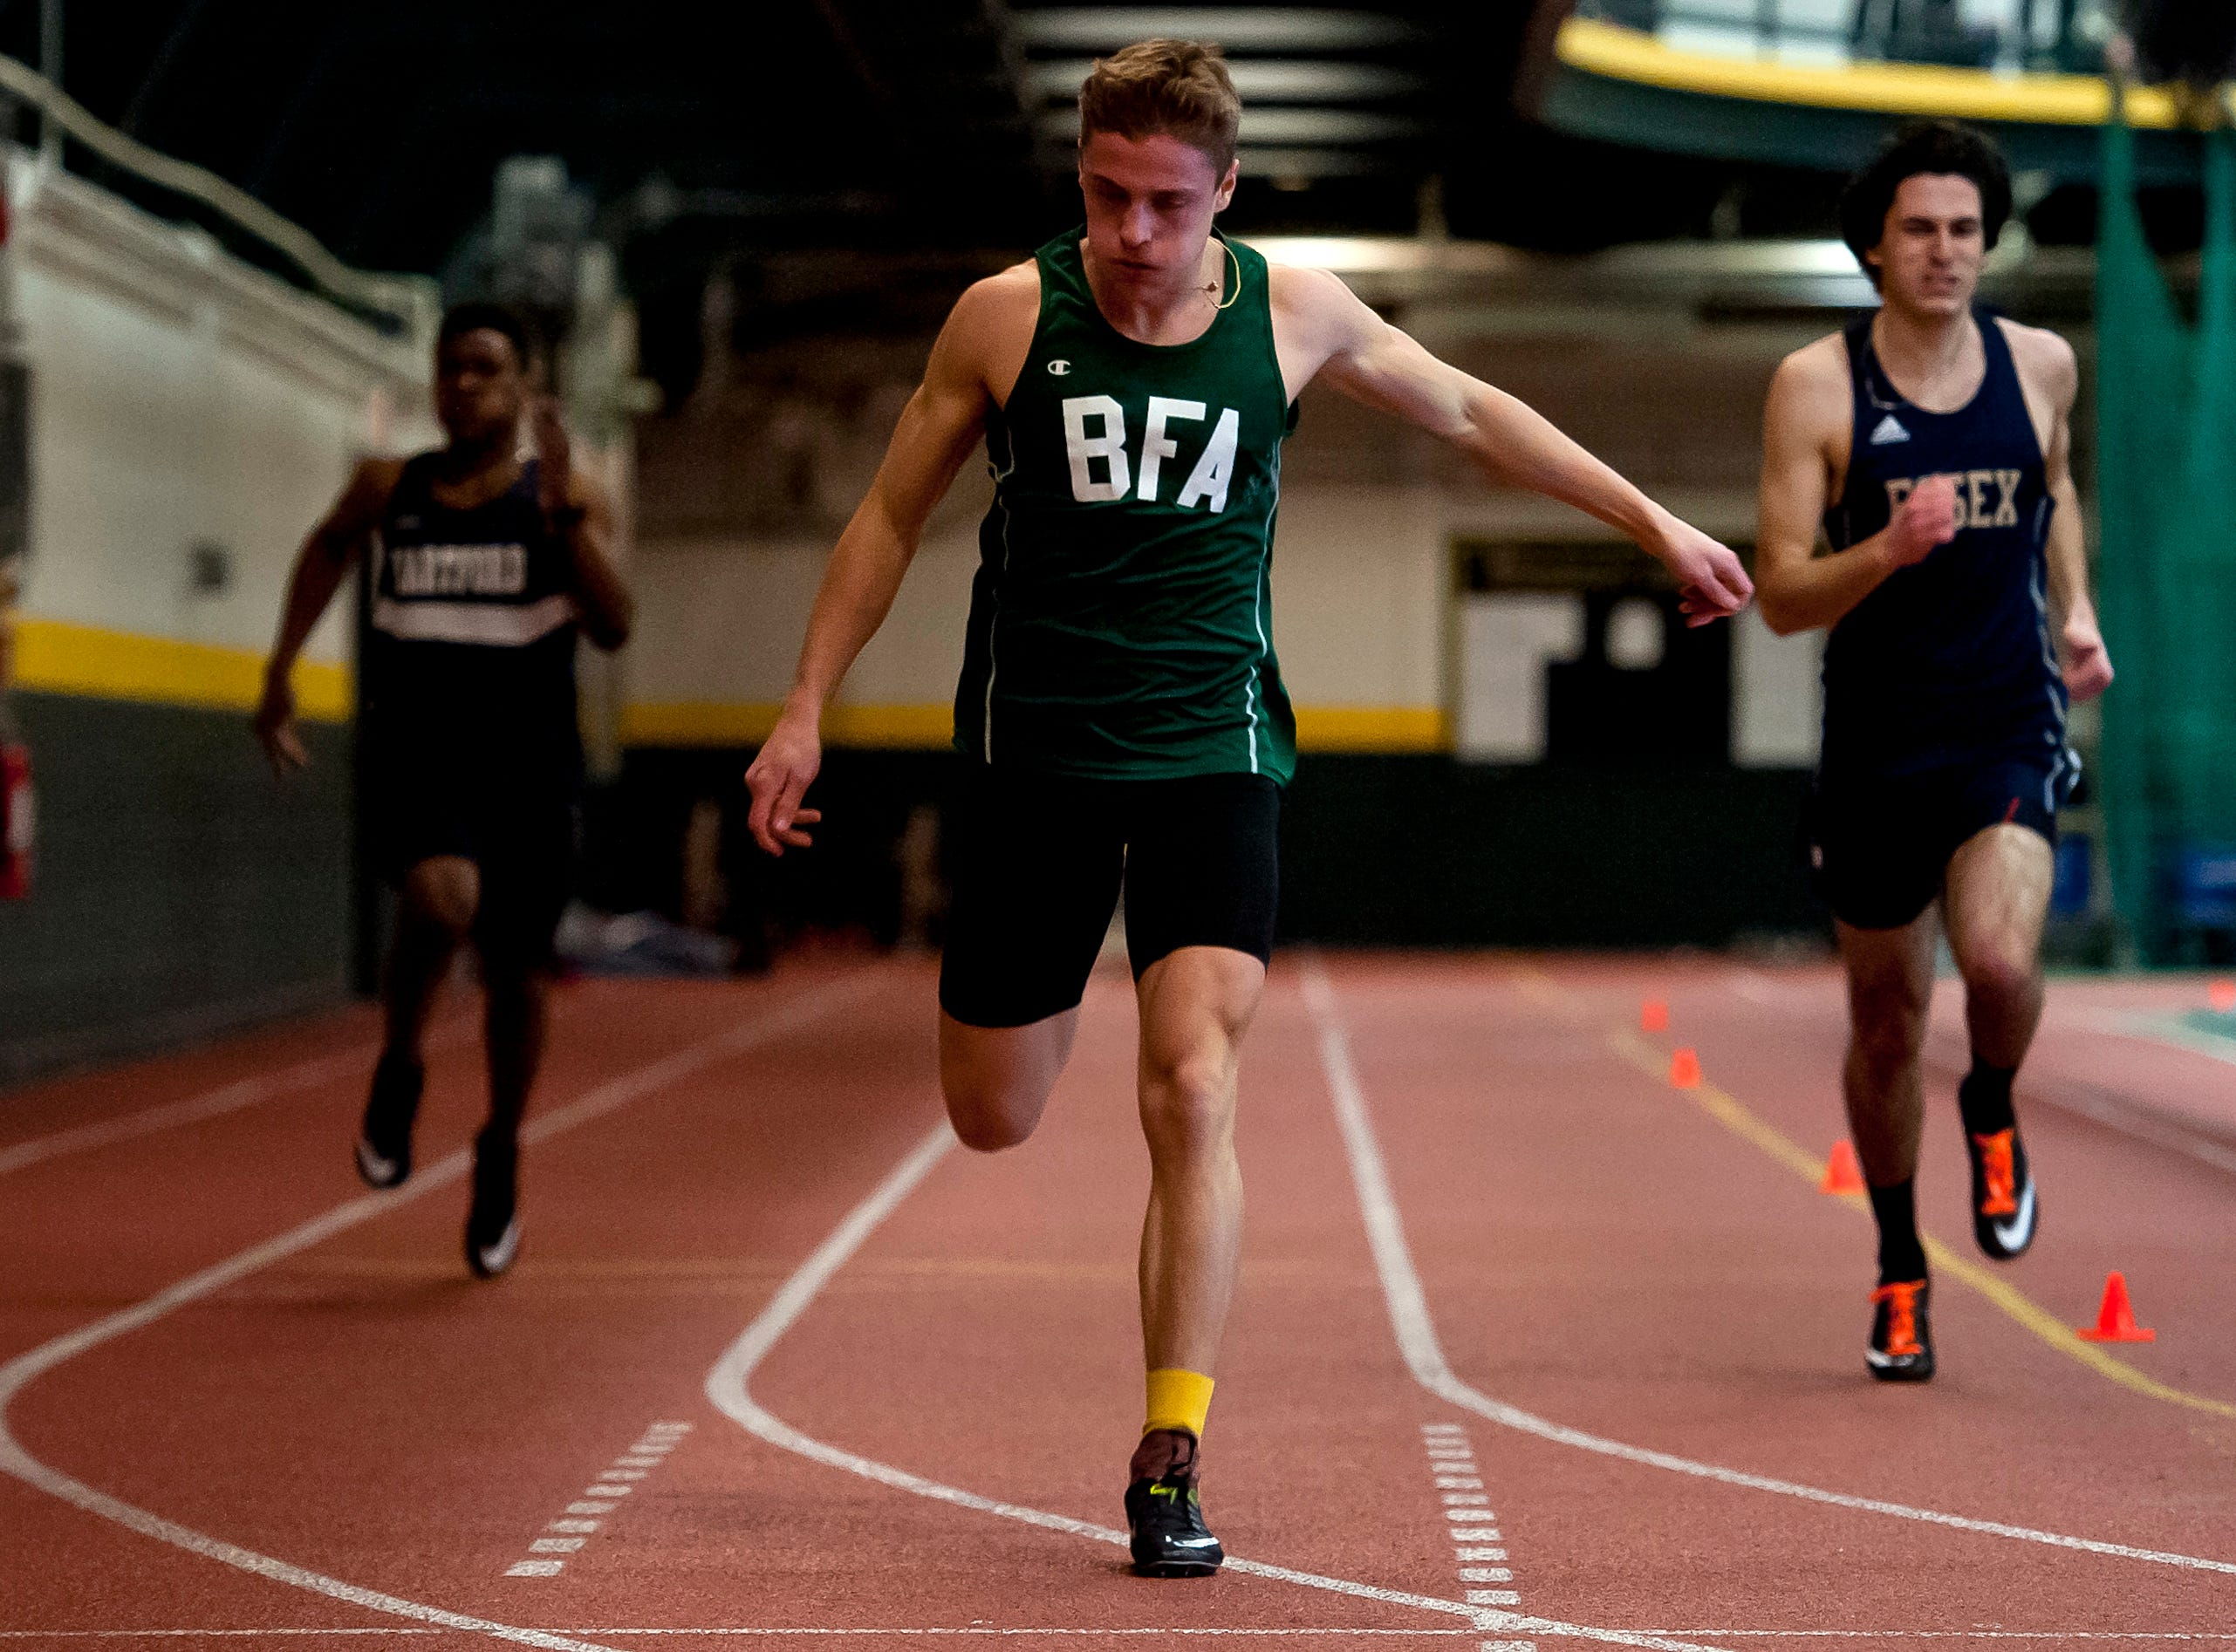 BFA-St. Albans Trey Poquette, center, hits the finish line to win the boys 300 meters at the high school indoor track state championships at the University of Vermont on Saturday.